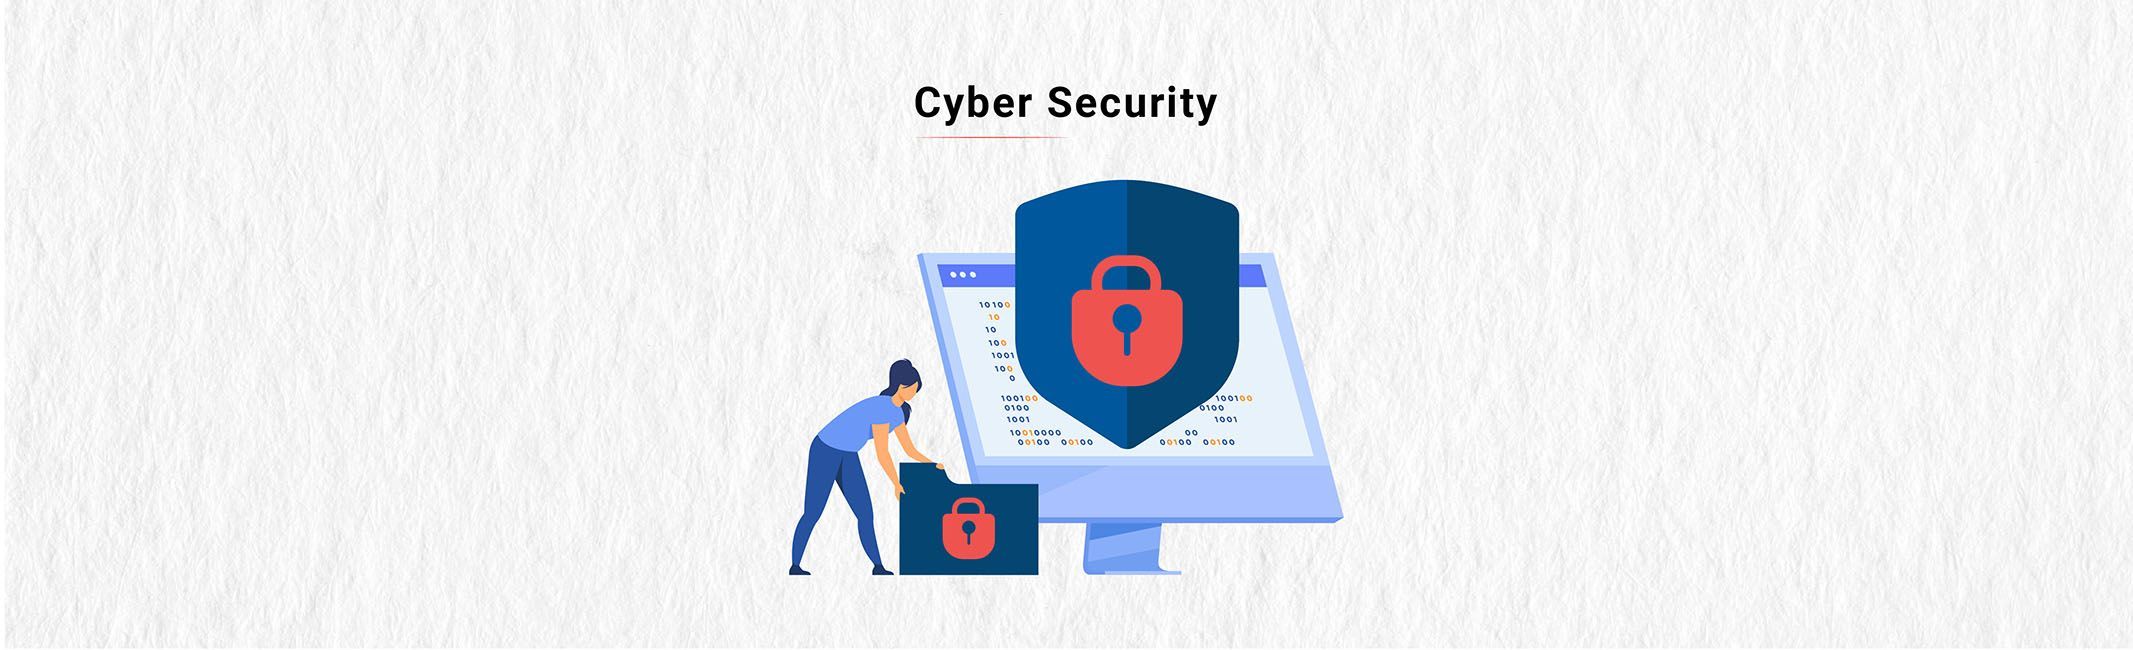 /the-beginners-guide-to-ransomware-prevention-in-2021-yz7o35fe feature image